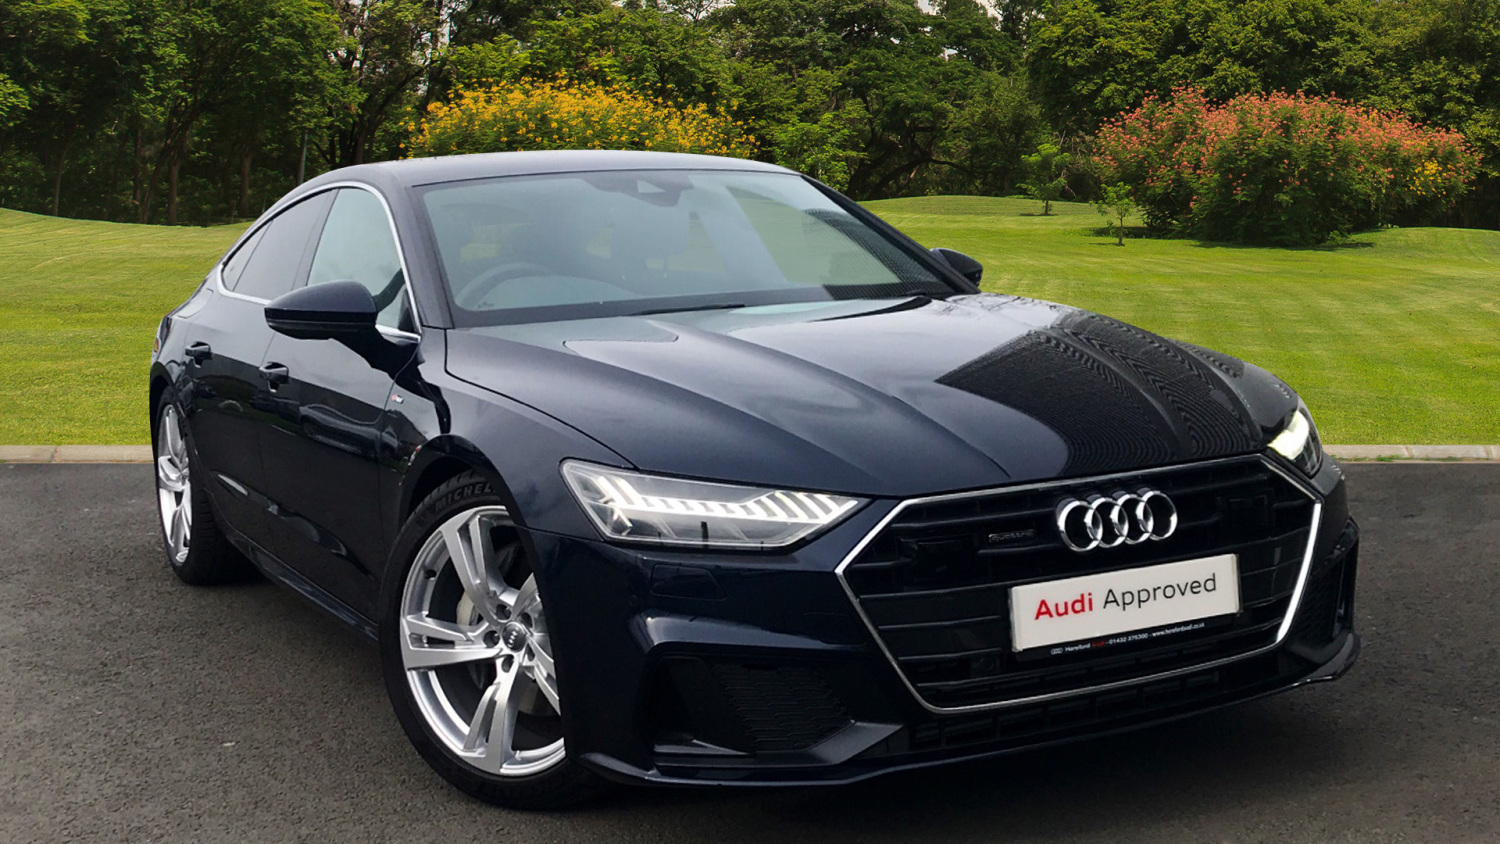 used audi a7 50 tdi quattro s line 5dr tip auto diesel hatchback for sale bristol street motors. Black Bedroom Furniture Sets. Home Design Ideas